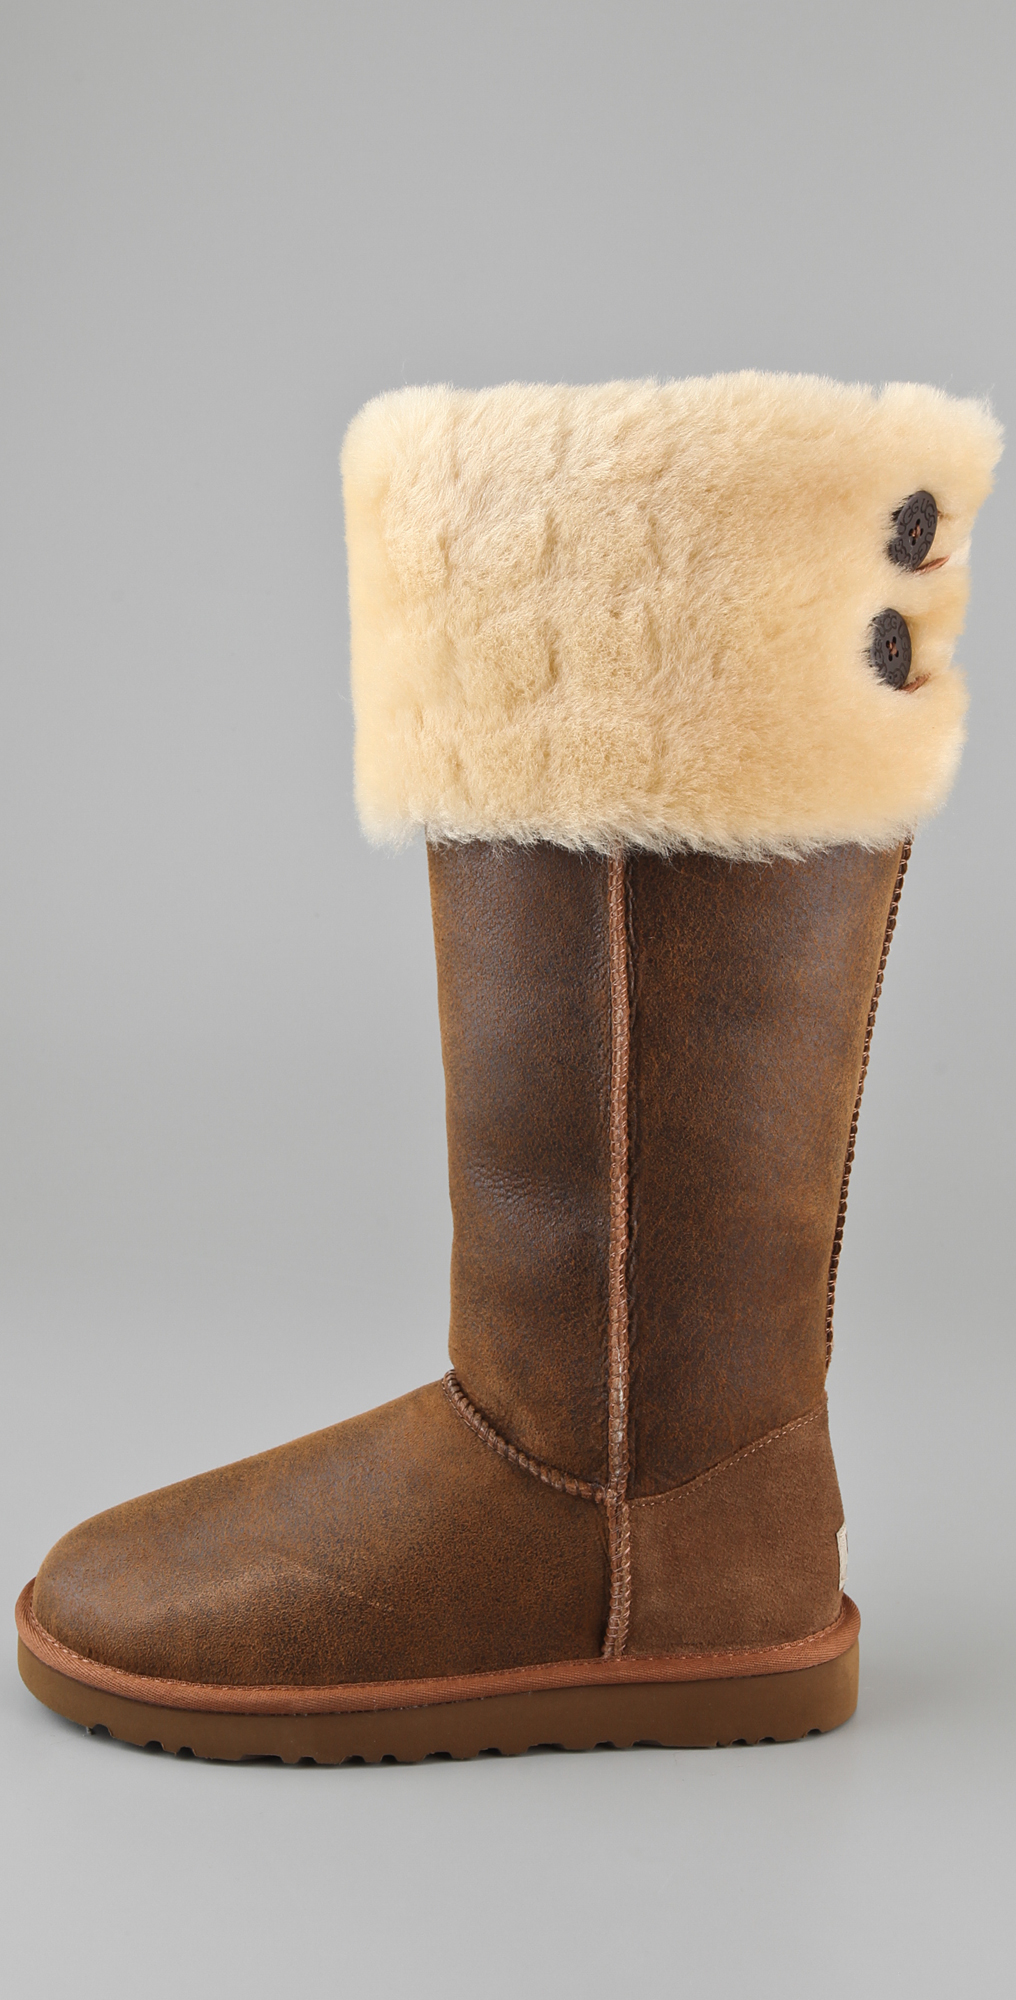 03132b0cda8 UGG Australia Over the Knee Bailey Button Boots | SHOPBOP